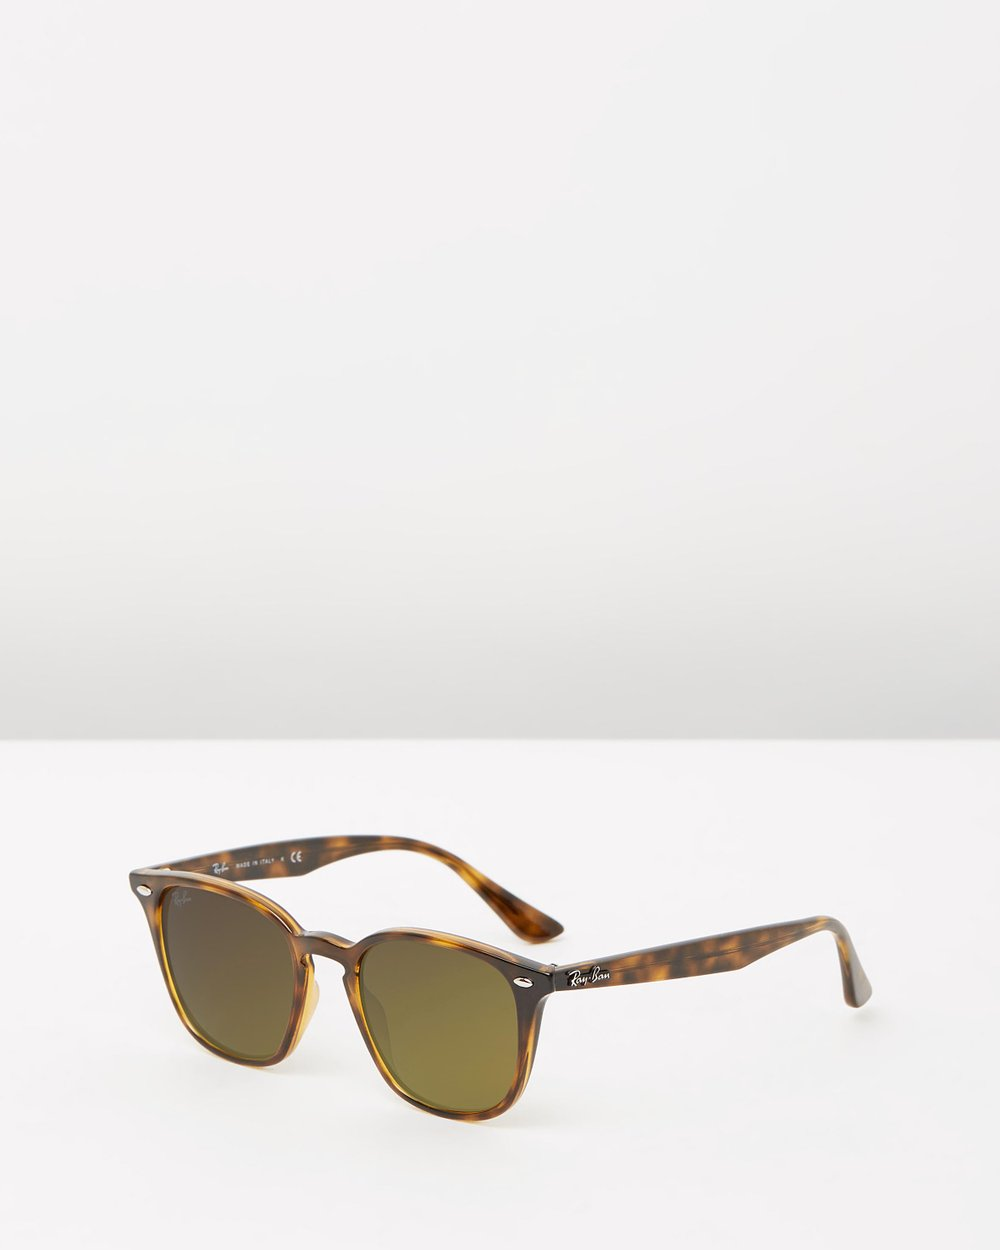 795cc69be60f RB4258 by Ray-Ban Online